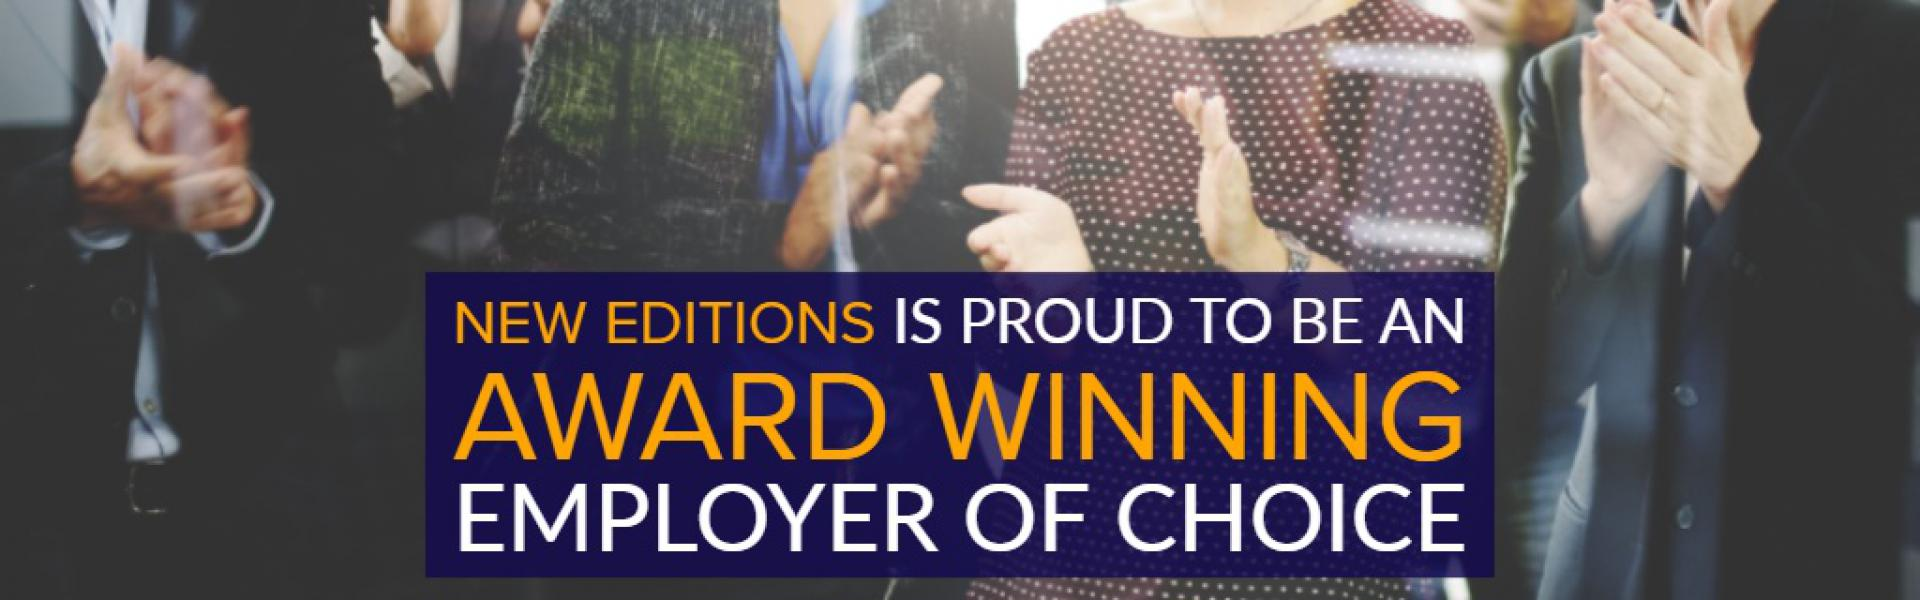 New Editions is proud to be an awarding winning employer of choice